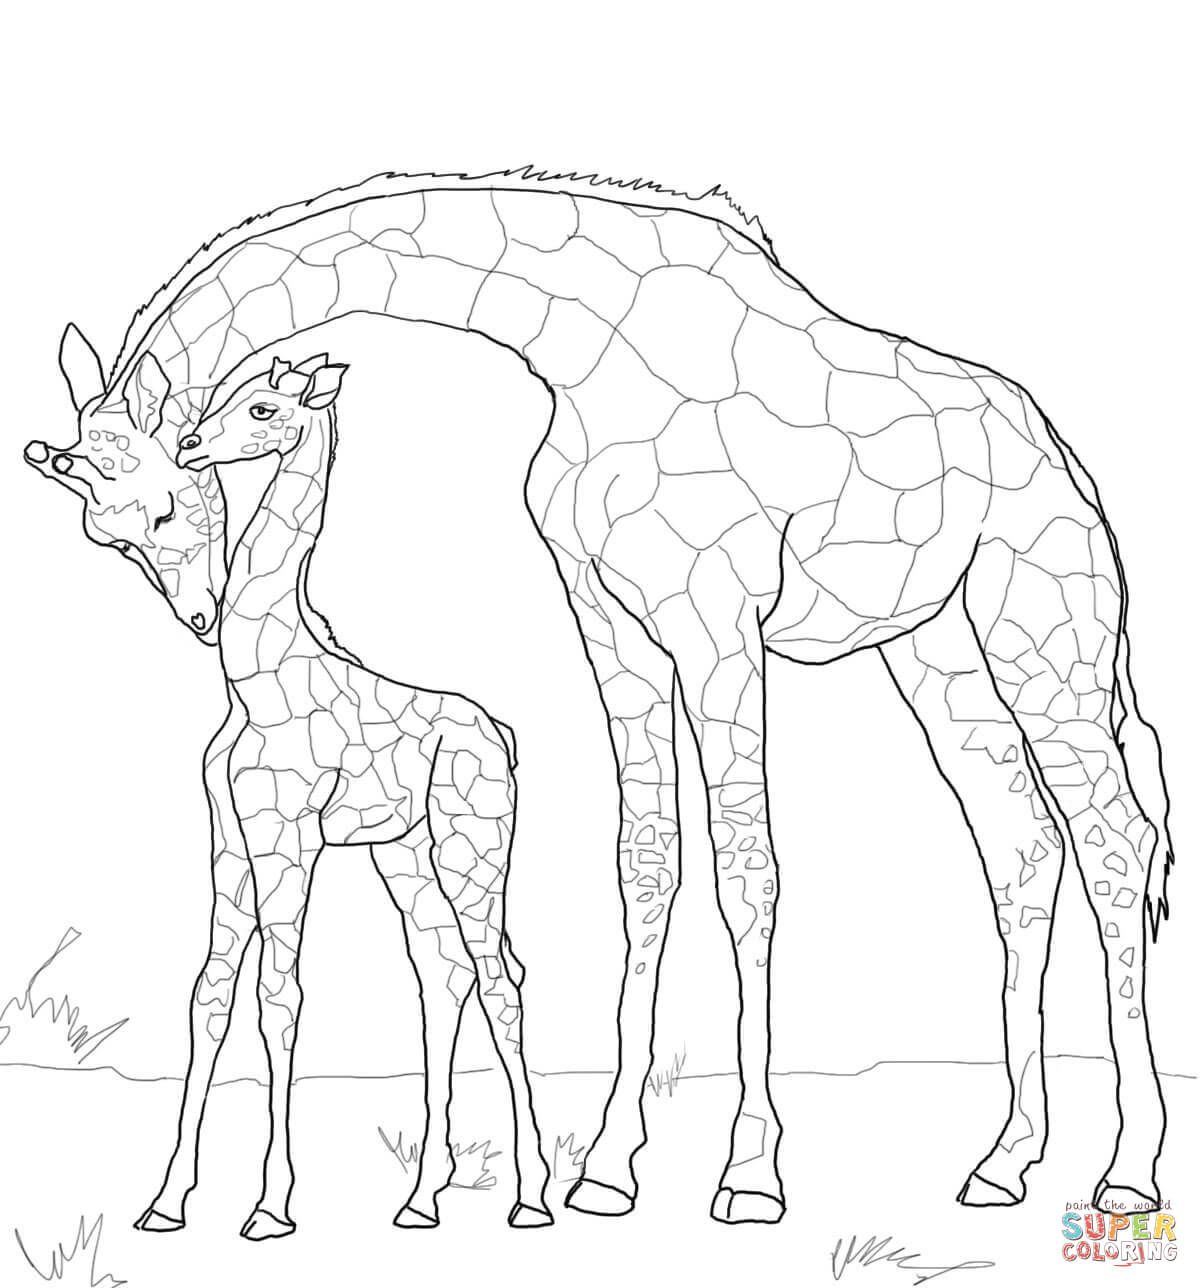 Baby Giraffe and Mother | Super Coloring | สวยๆ | Pinterest | Baby ...